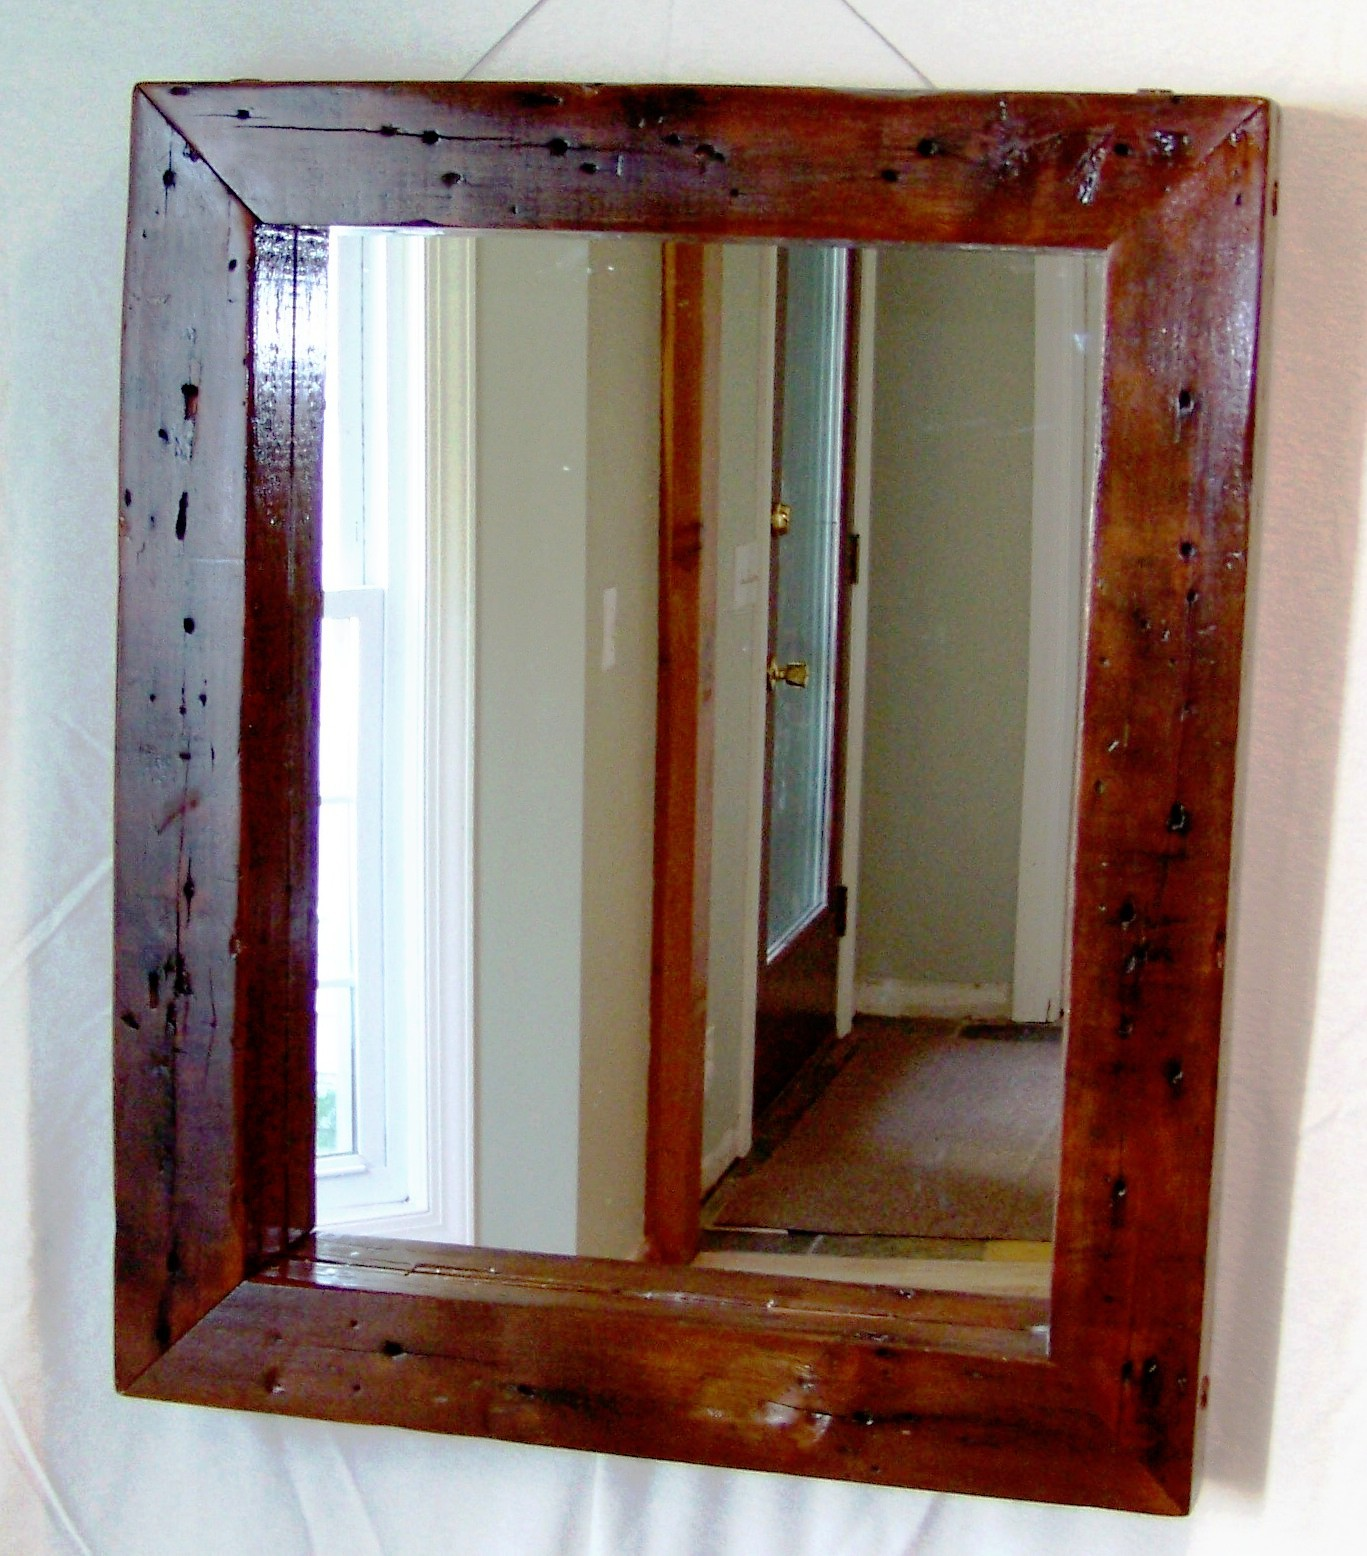 Mirror Reclaimed Wood | Round Metal Mirrors for Walls | Reclaimed Wood Mirror